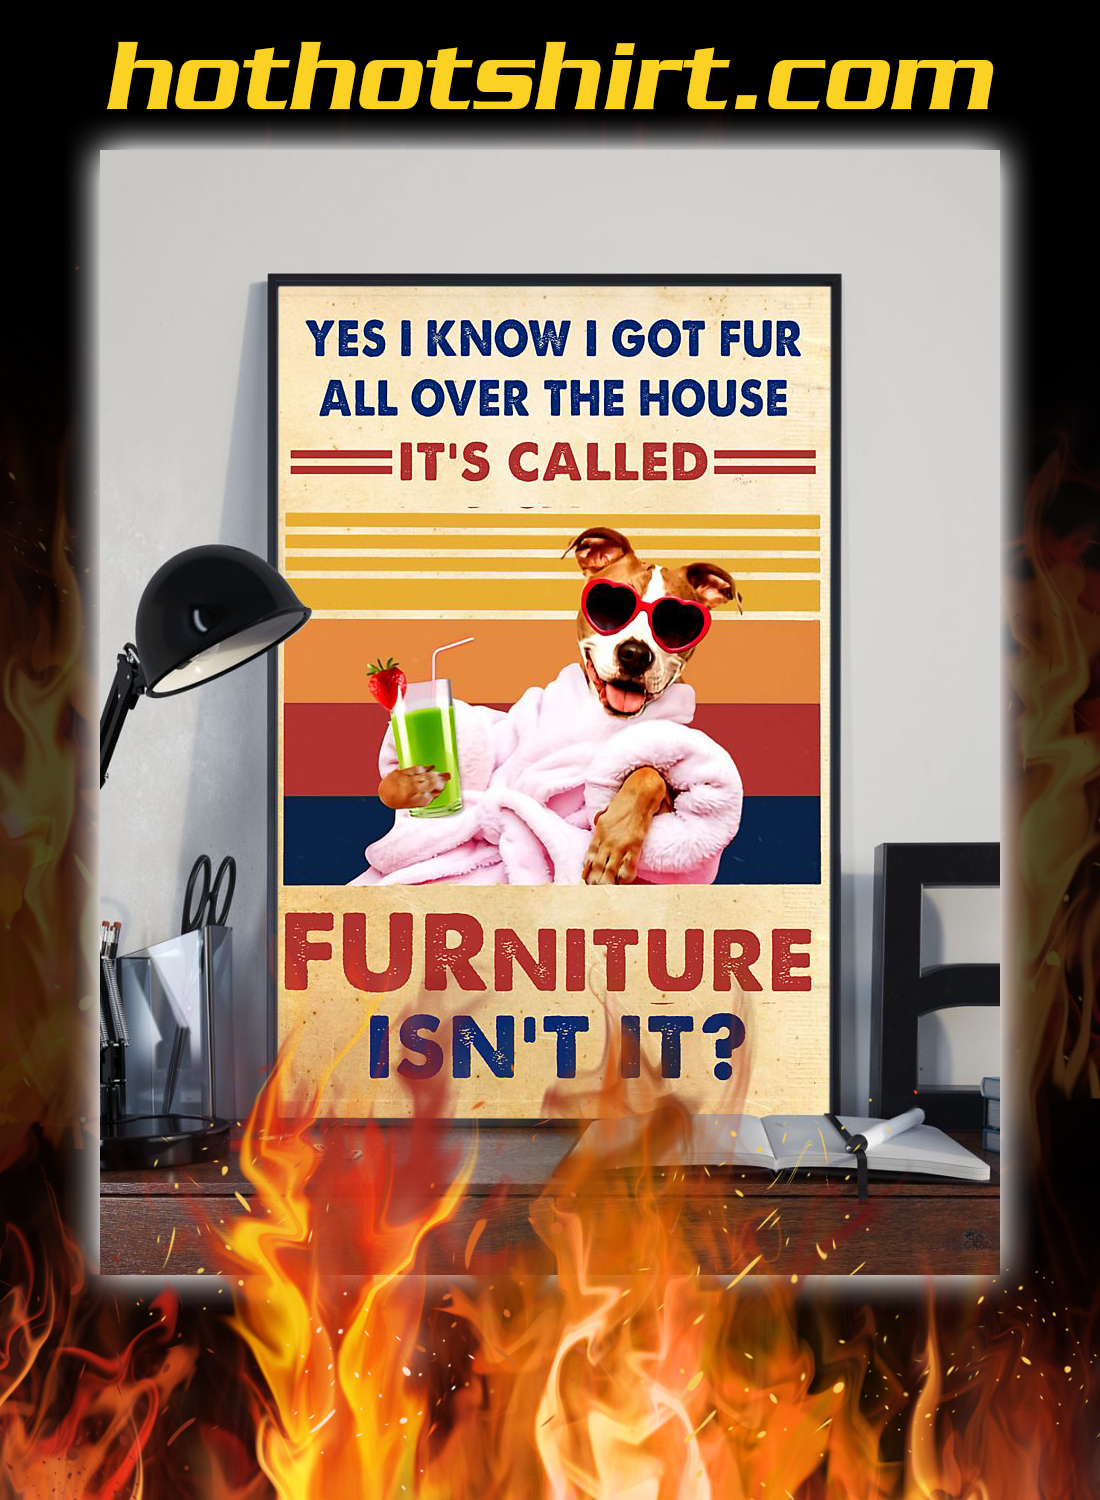 Pitbull yes i know i got fur all over the house it's called FURniture isn't it poster 1